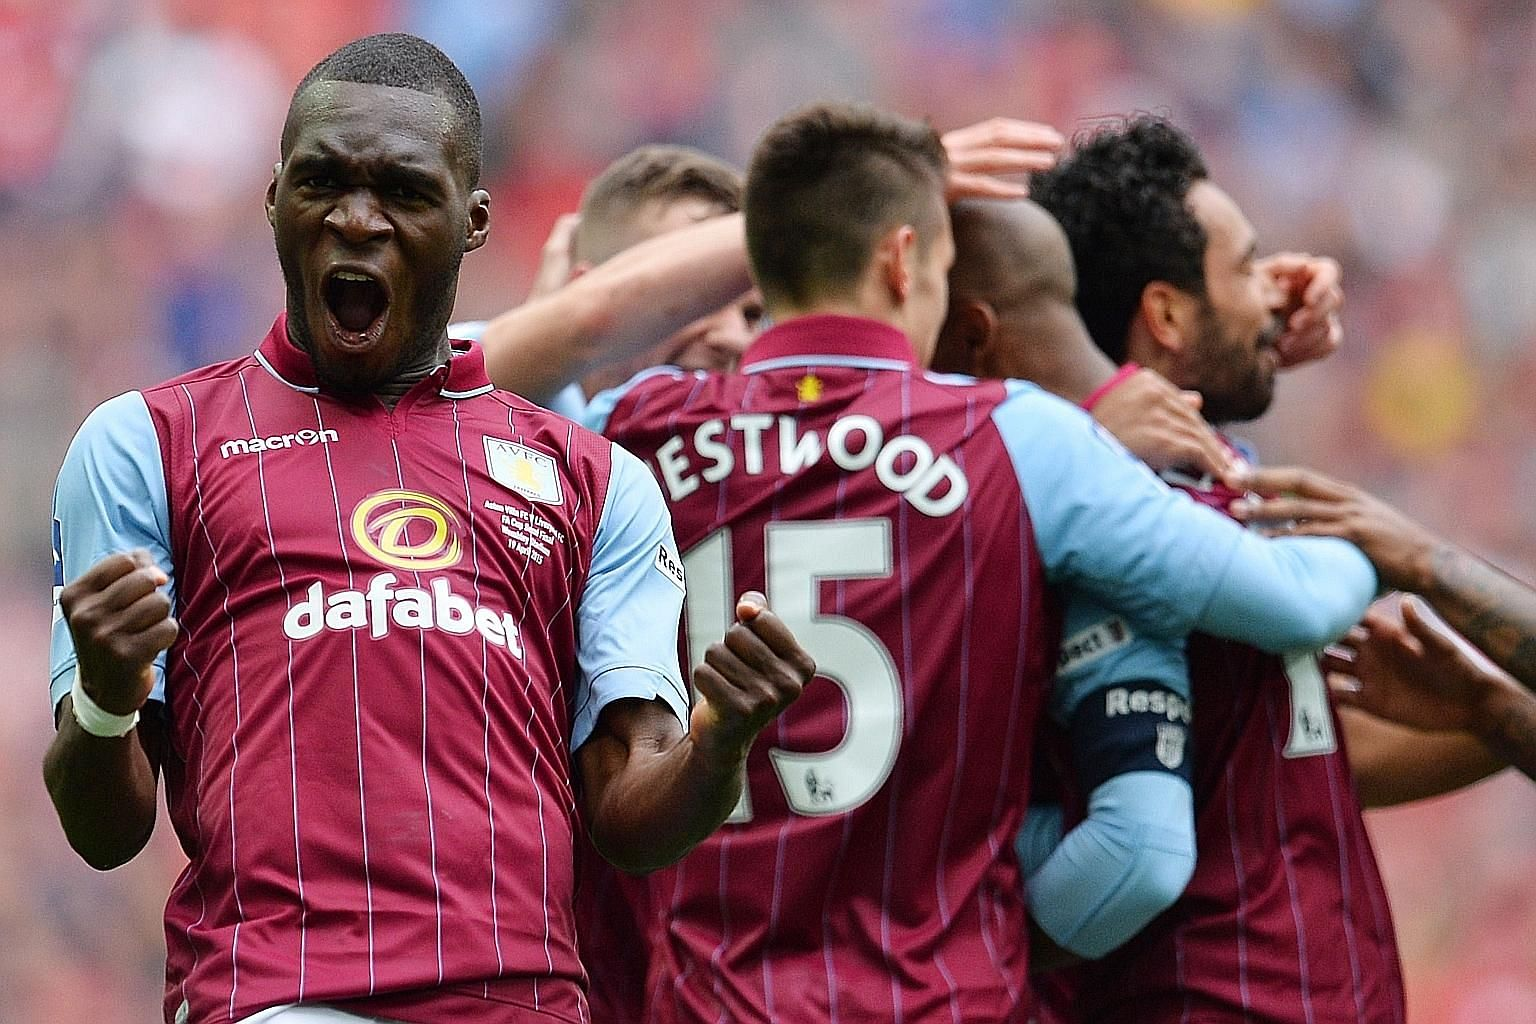 Liverpool will step up their interest in striker Christian Benteke only if Aston Villa are prepared to accept less than £32.5 million.